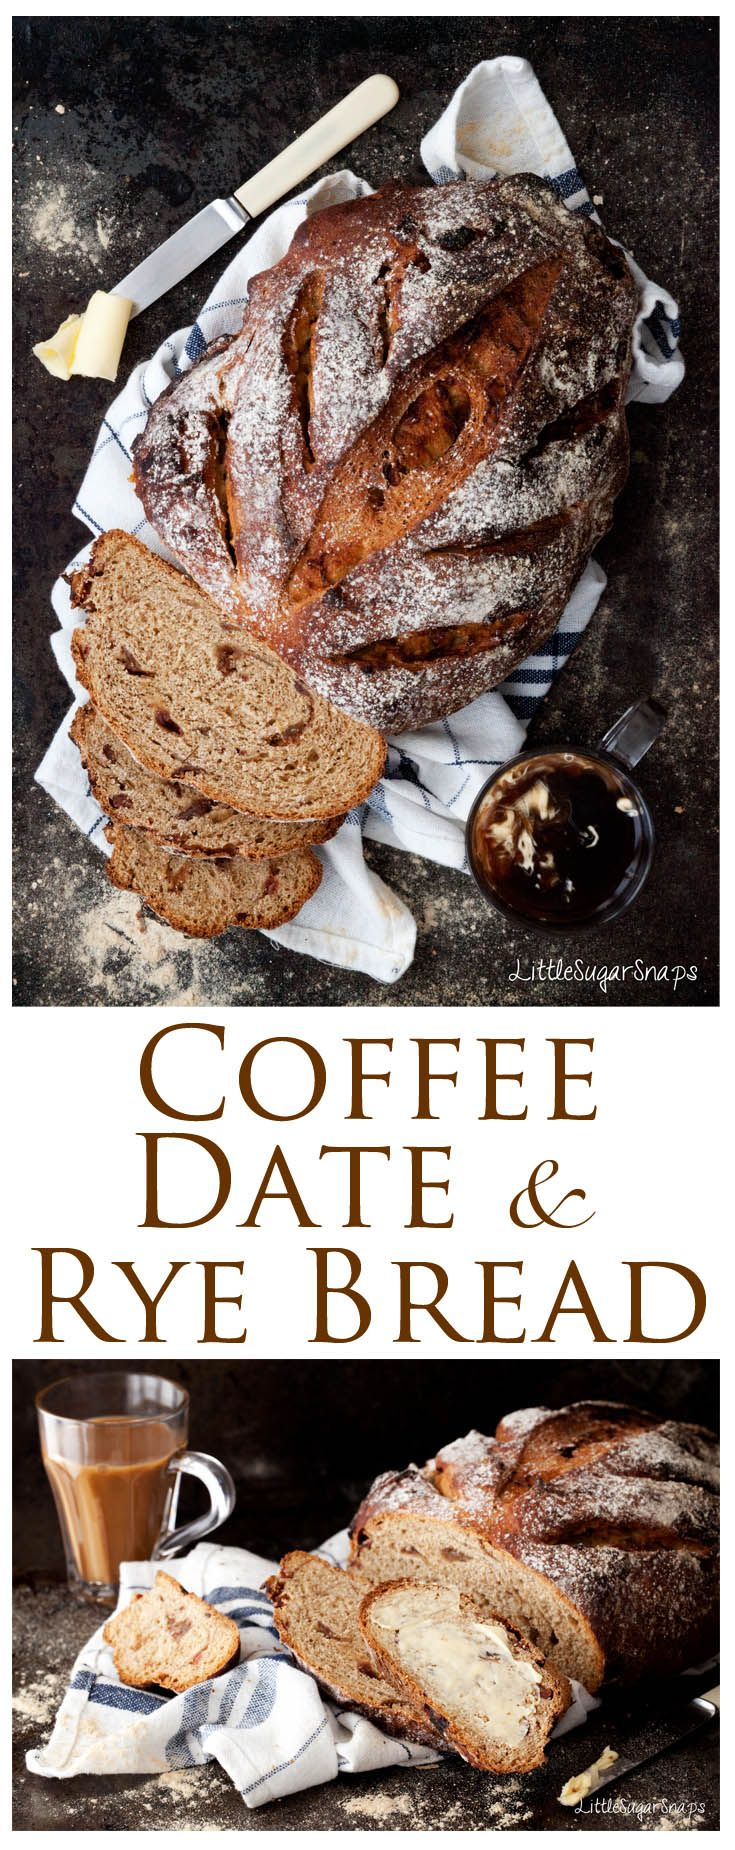 Homemade Coffee Date Rye Bread is worth taking your time